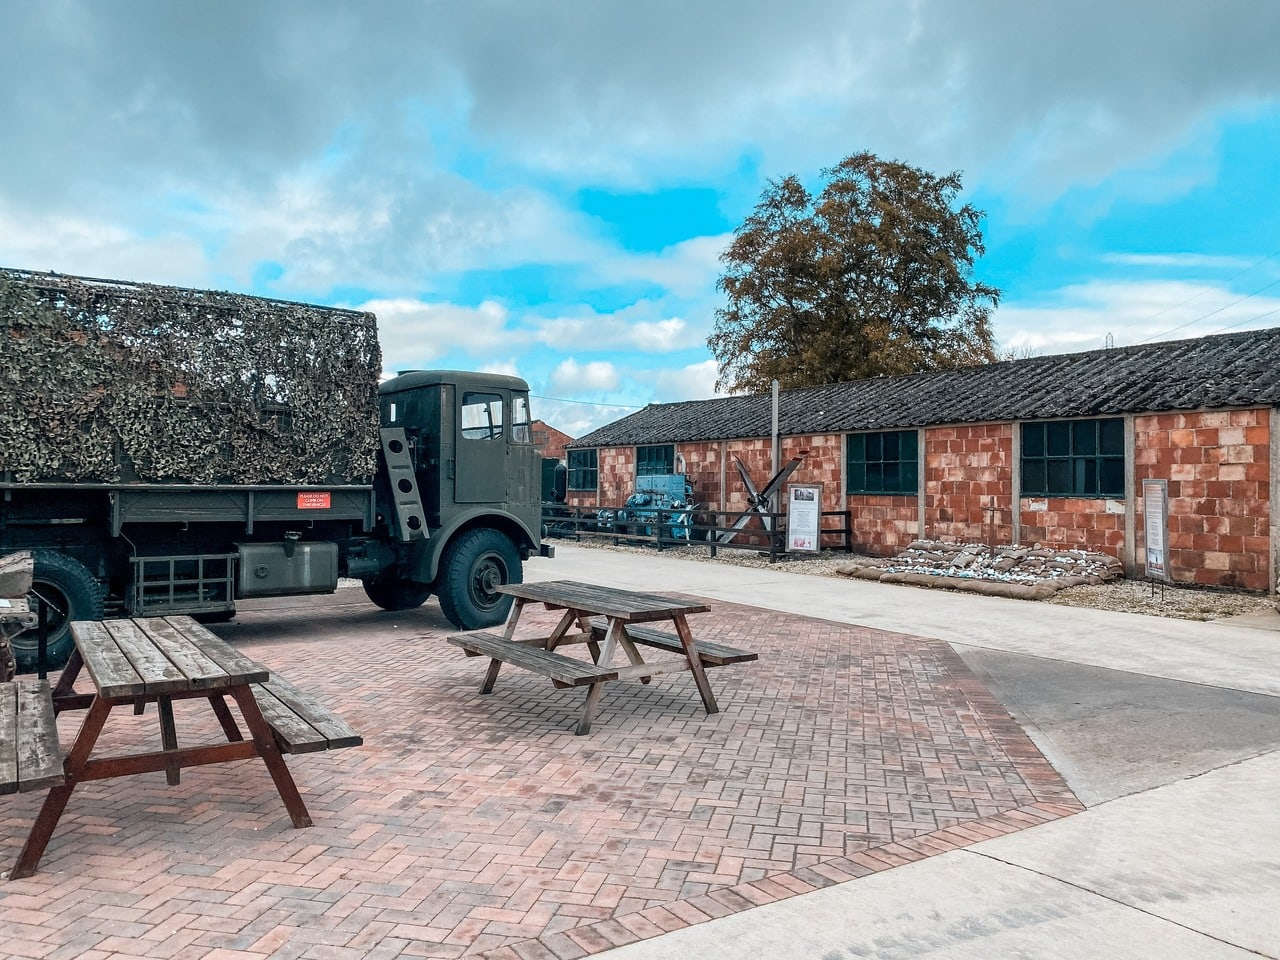 Eden Camp Museum outside York in England, a great day out in Yorkshire